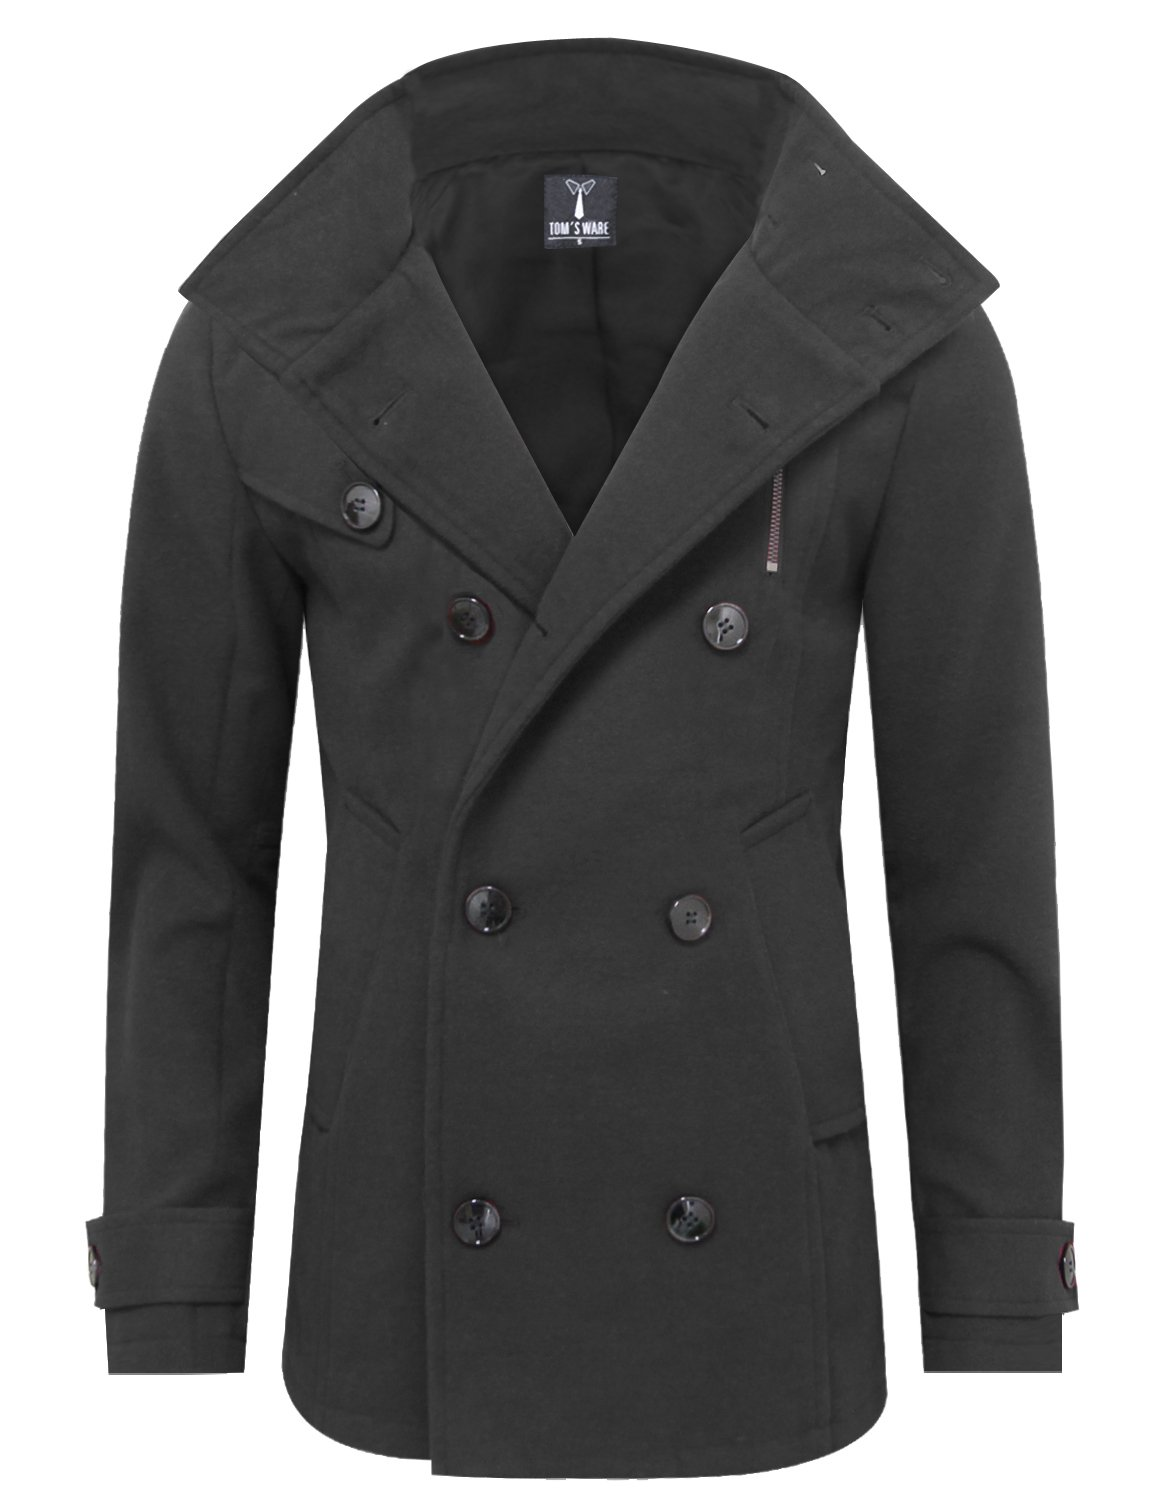 Tom's Ware Mens Stylish Fashion Classic Wool Double Breasted Pea Coat TWCC06-08-CHARCOAL-US XL